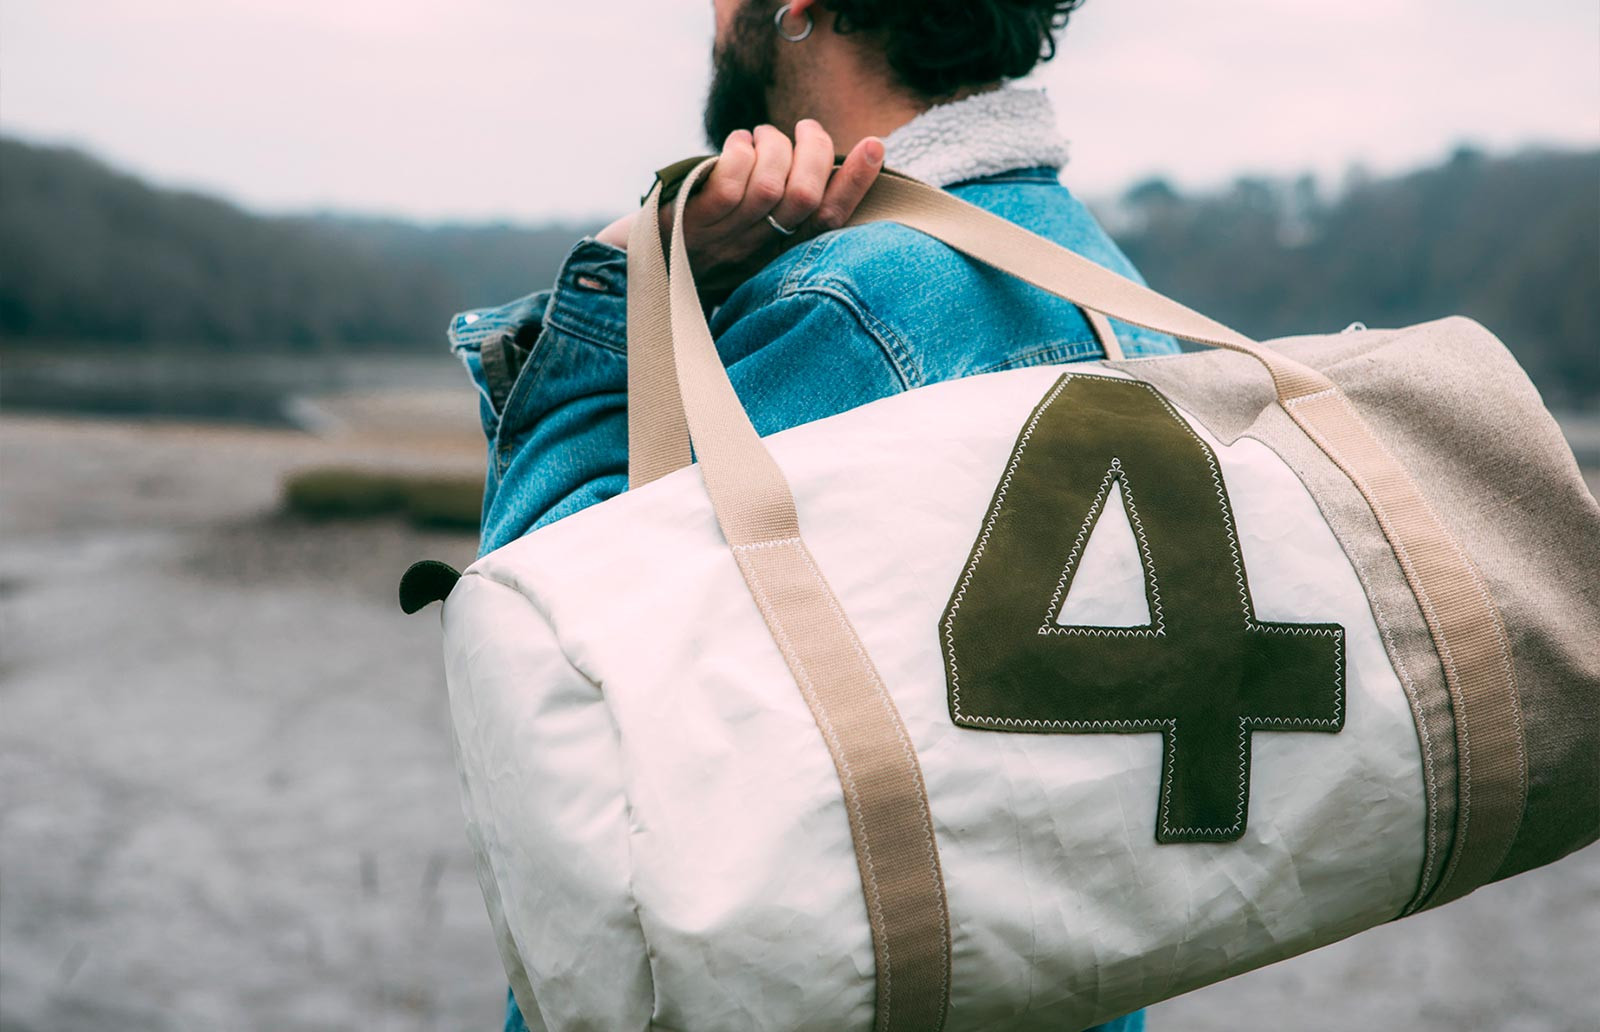 727Sailbags weekend bag: the Onshore bag, creation in sailcloth